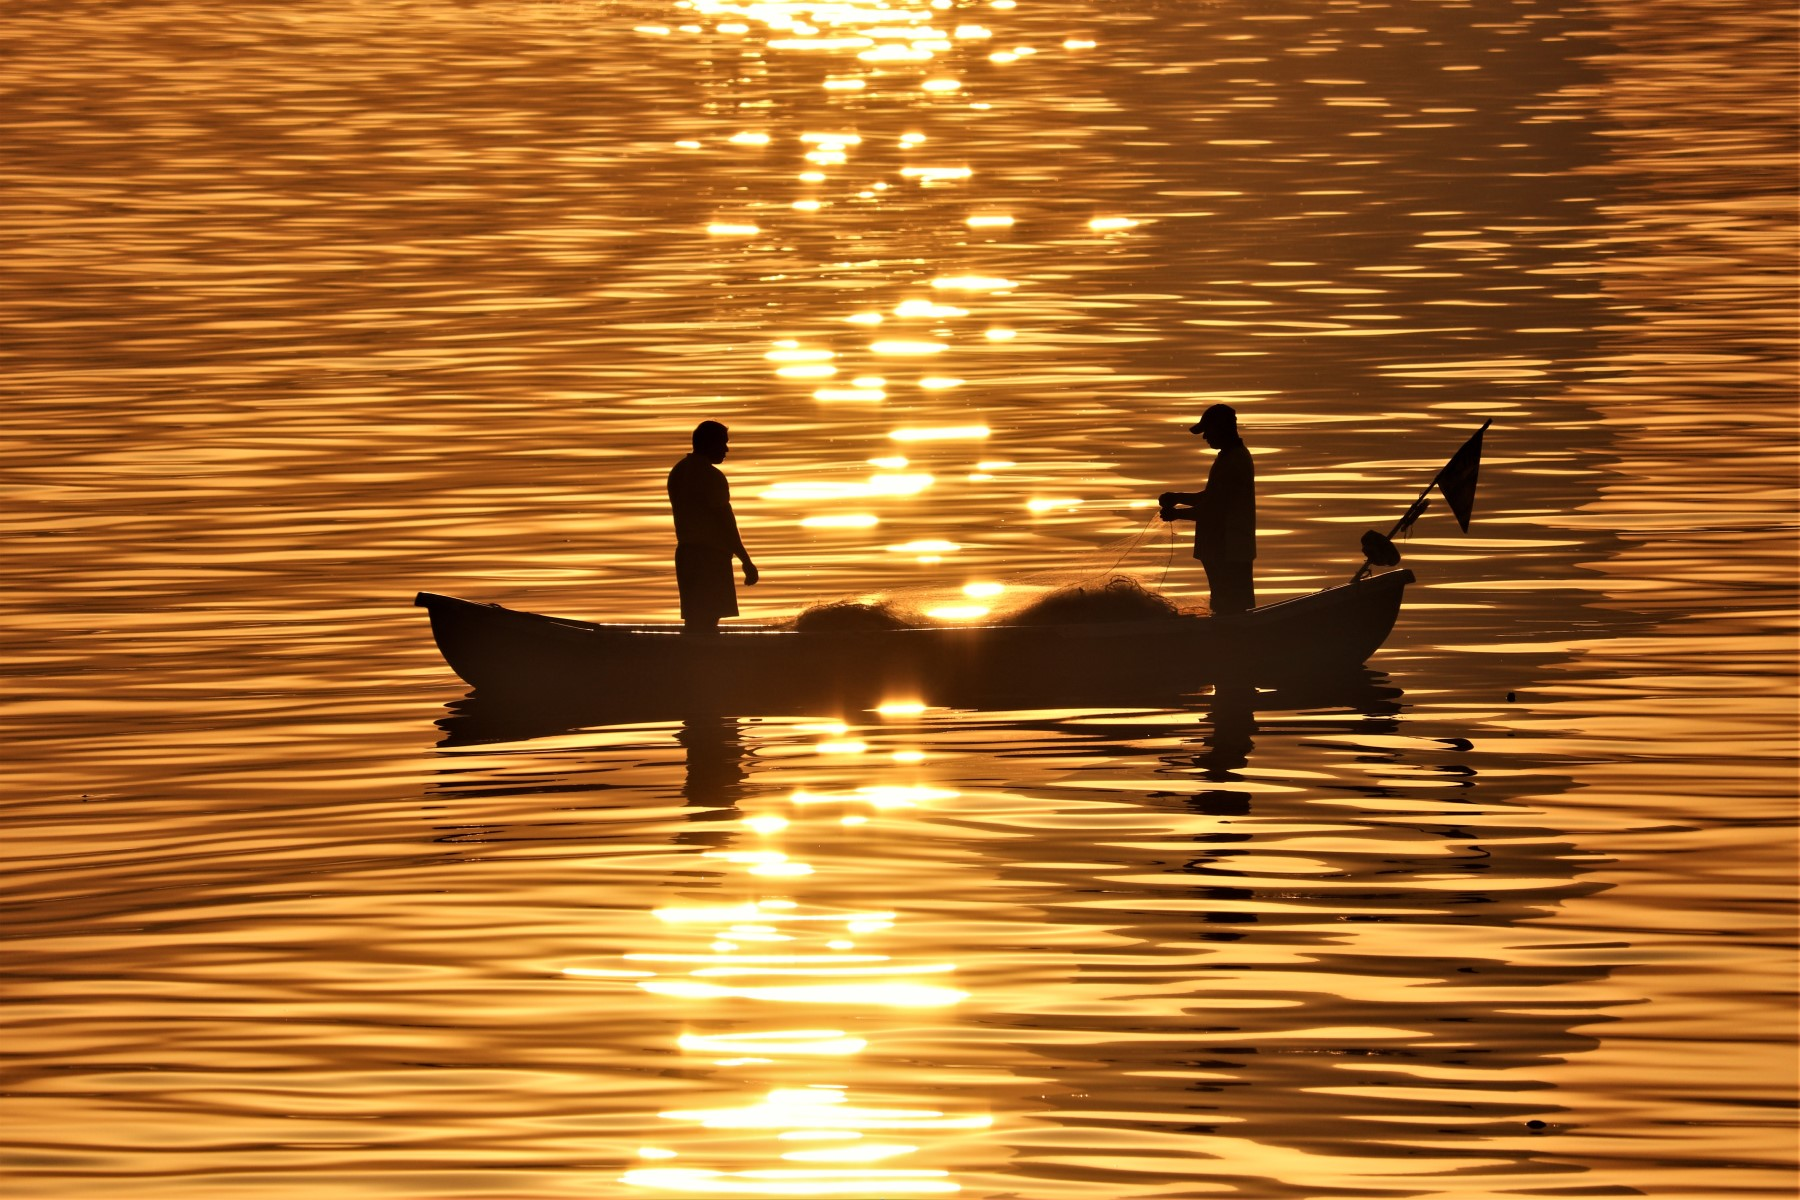 Mayur_Sarma_Fishermen at sunrise.jpg